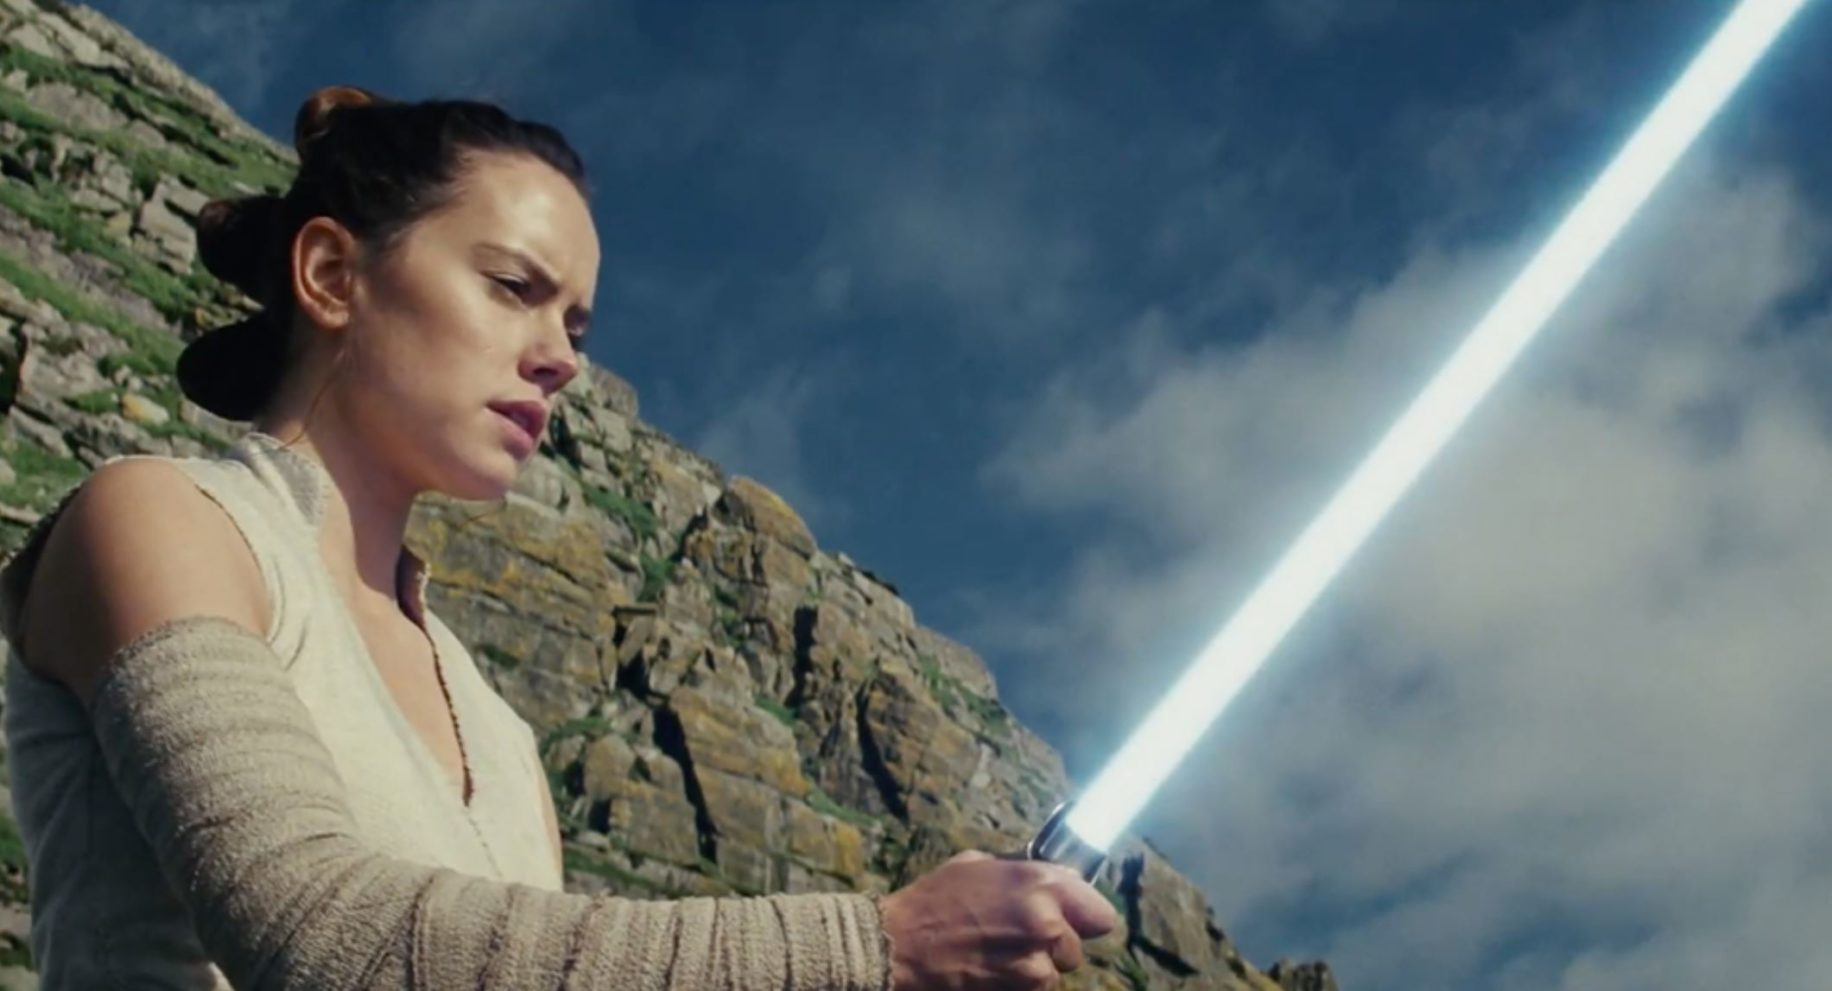 Watch the First Full Trailer for 'Star Wars: The Last Jedi' – With a Small Caveat